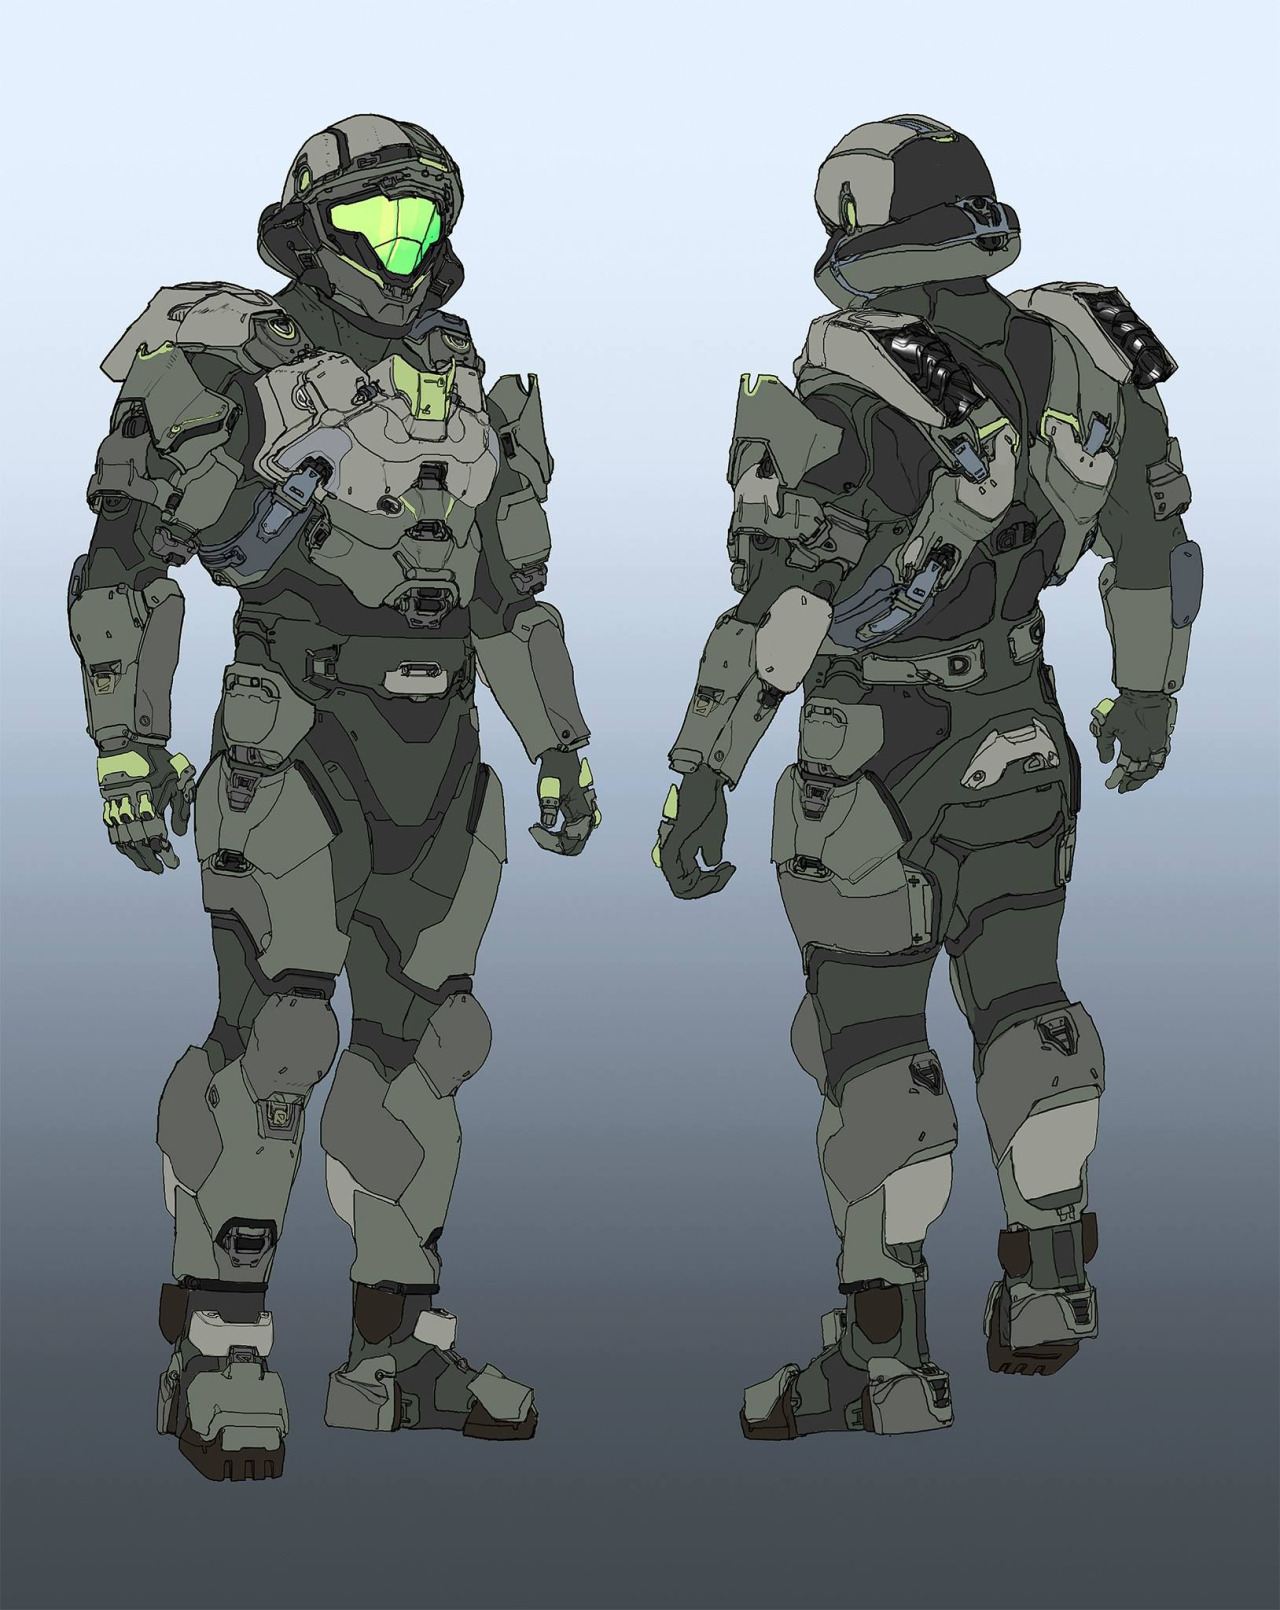 Halo 5: Guardians Concept Art by Daniel Chavez (10 pics)